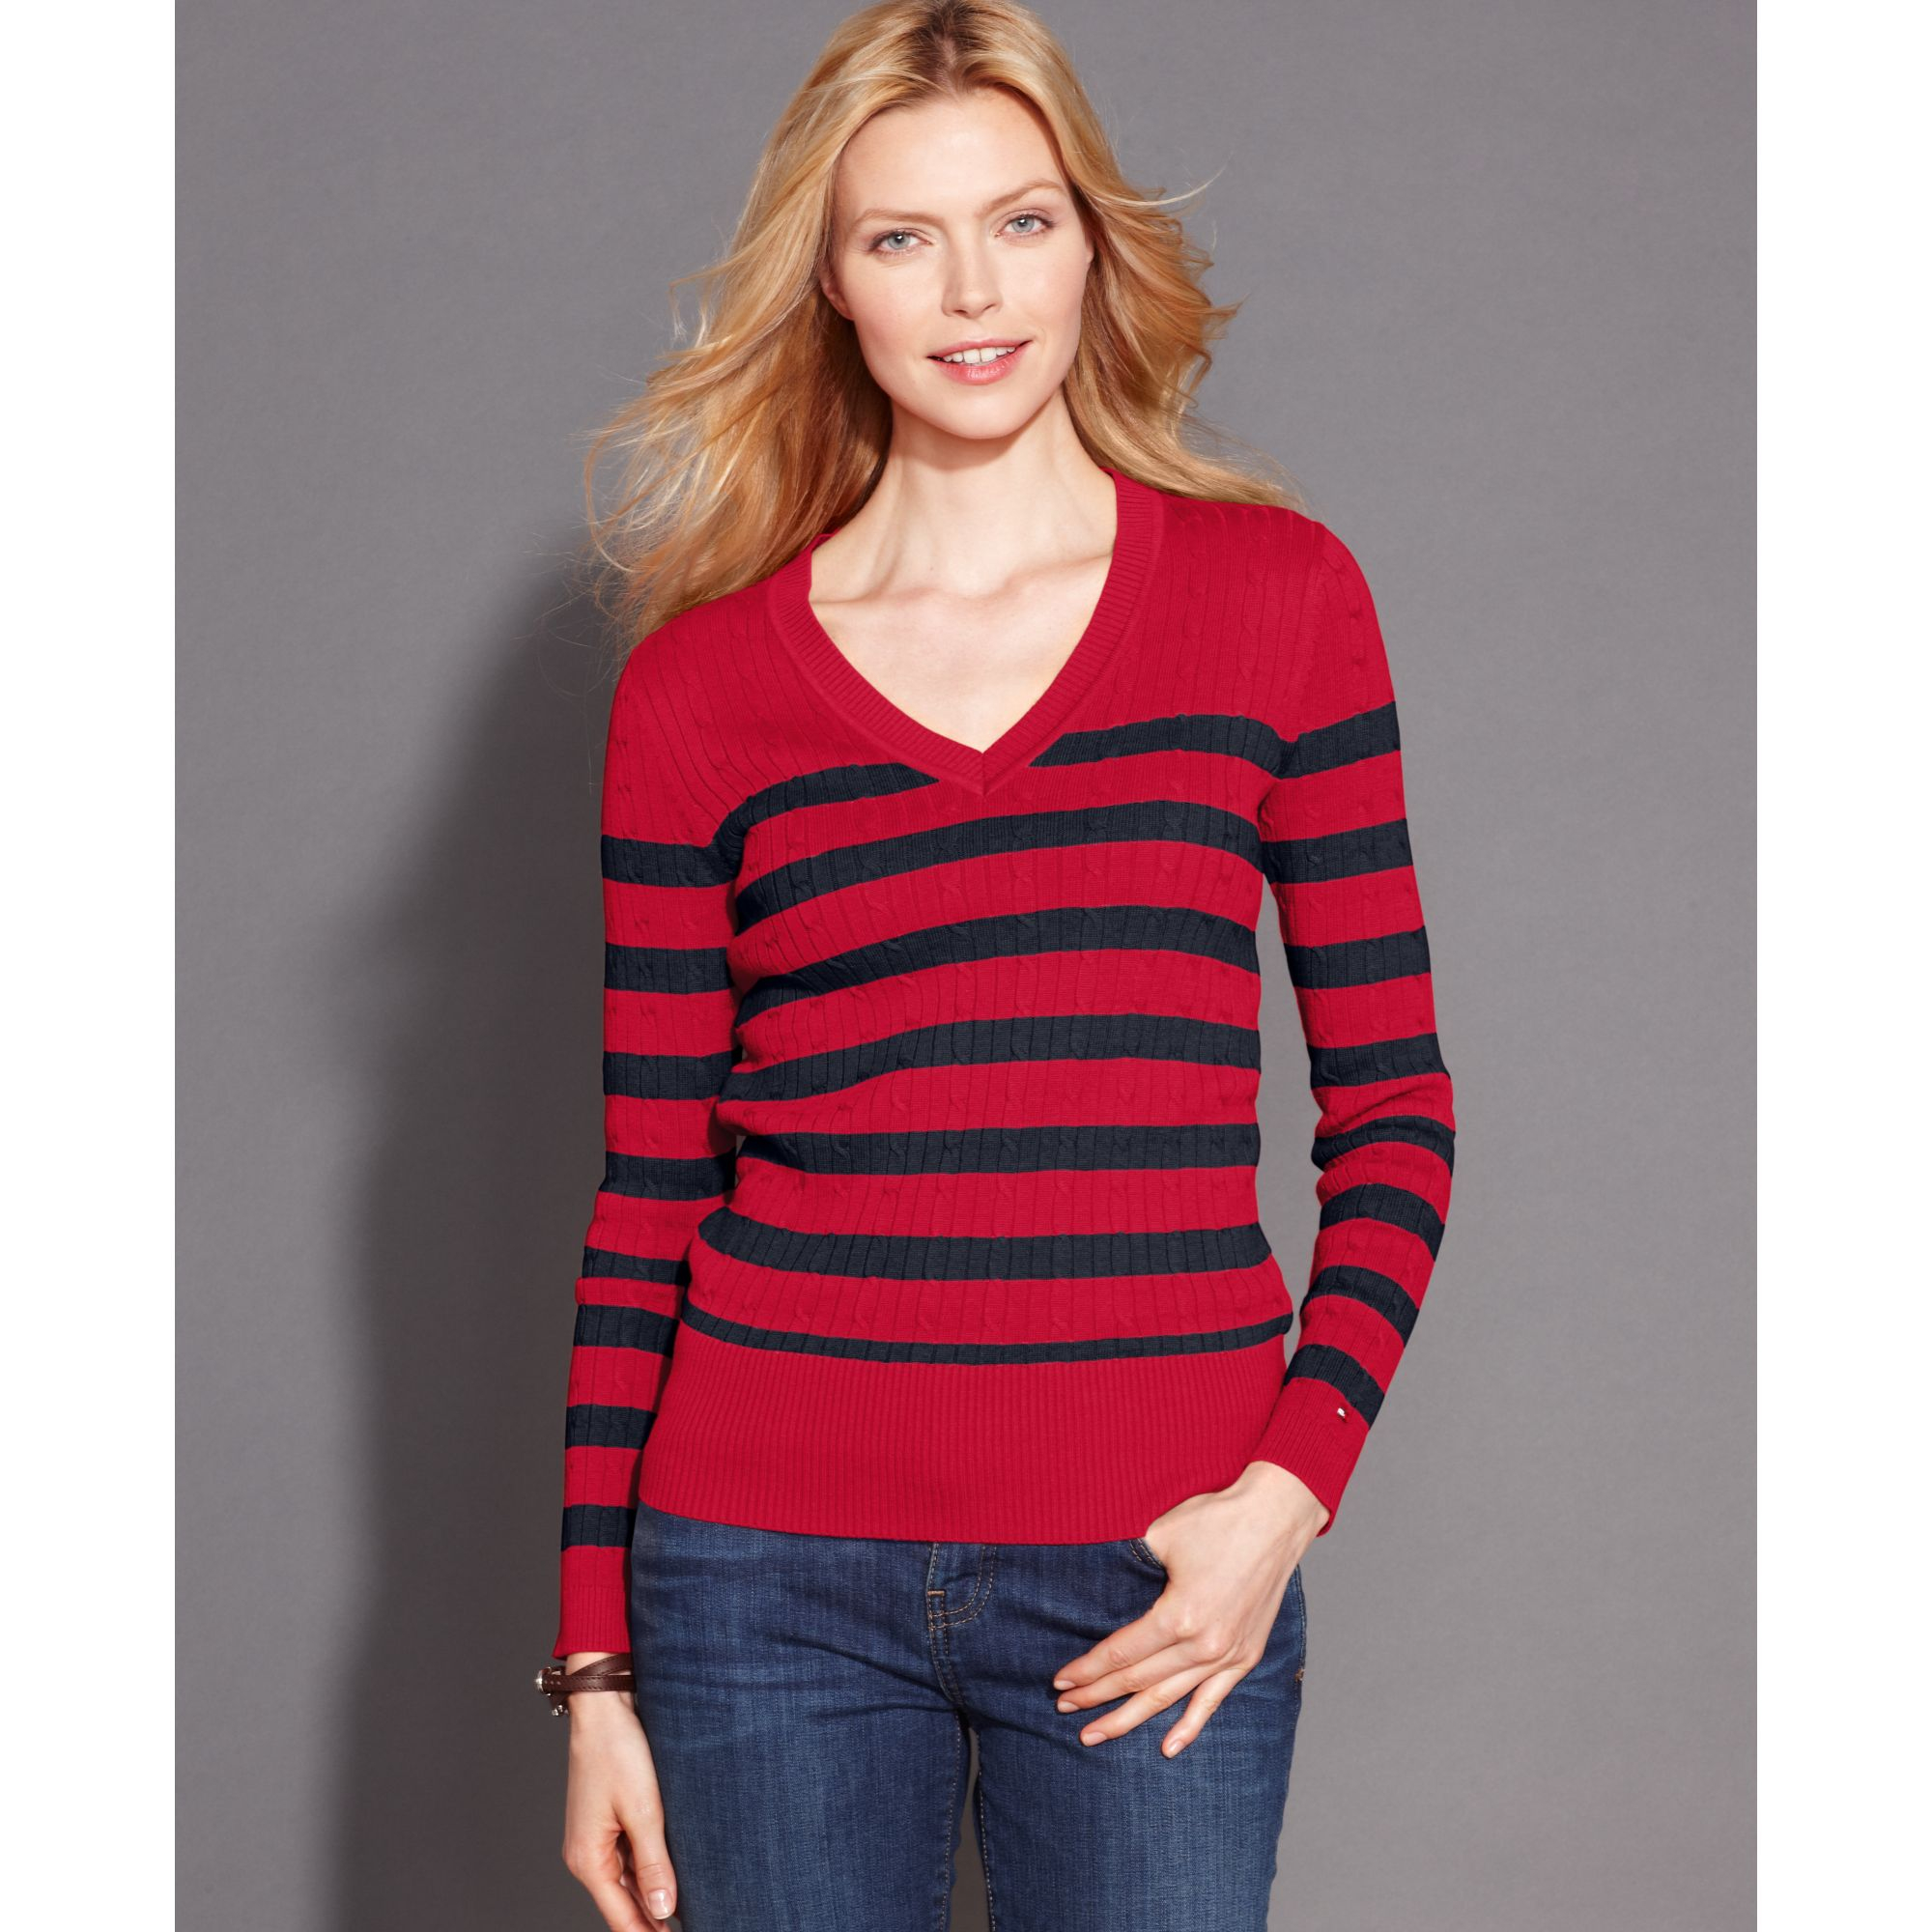 7bb69d842ff Tommy Hilfiger Red Longsleeve Striped Vneck Cableknit Sweater